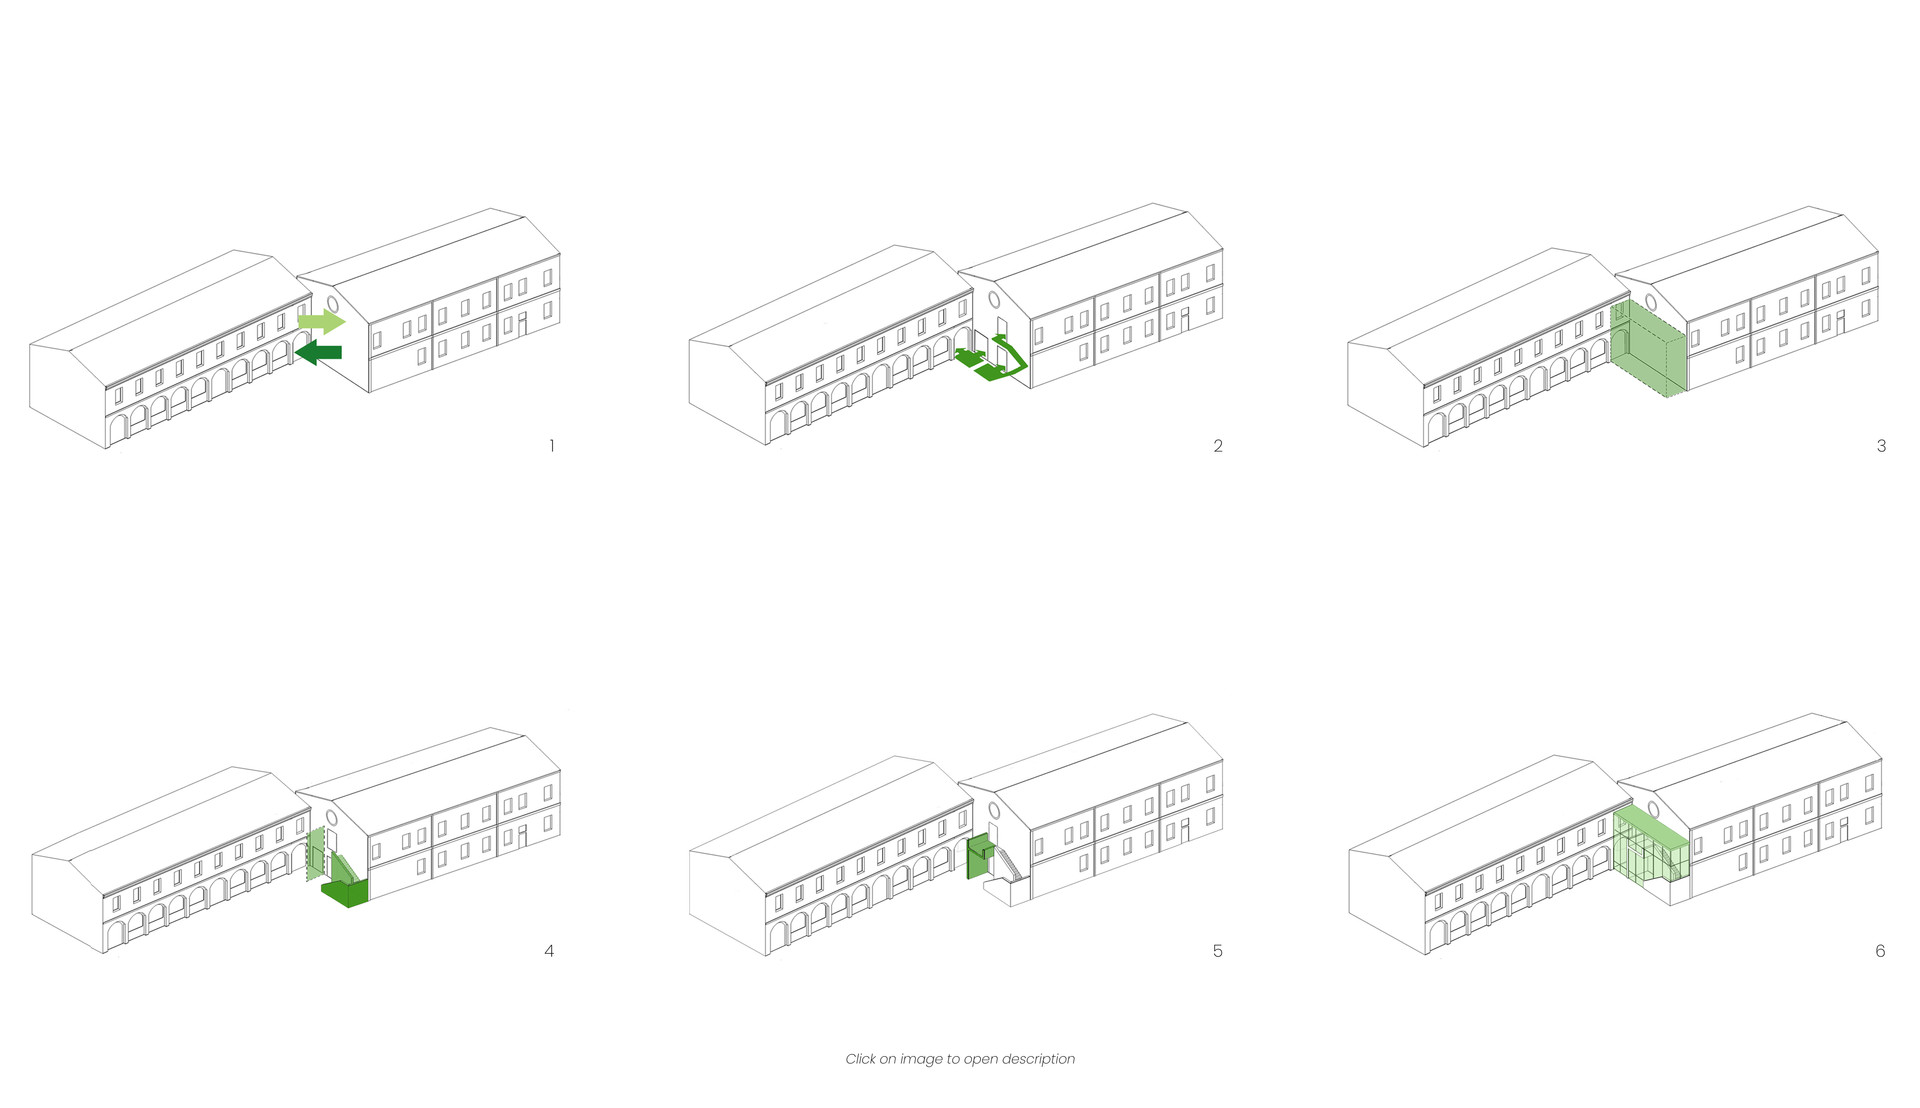 1 need to create a covered passage between the two buildings that are not communicating today  2 Identification and diversification of the vertical (library) and horizontal flows (connection between the corridors of the two buildings)  3 Definition of a covered volume that contains the stairwell  4 Division of spaces: placement of the staircase and placement of a wall according to the hypothesis of the distribution project  5 Positioning of a dividing partition and of the stair landing slab  6 Creation of a light steel and glass structure that volumetrically defines the stairwell: contrast between fullness (staircase, septa and covering) and vacuum (continuous glazing).